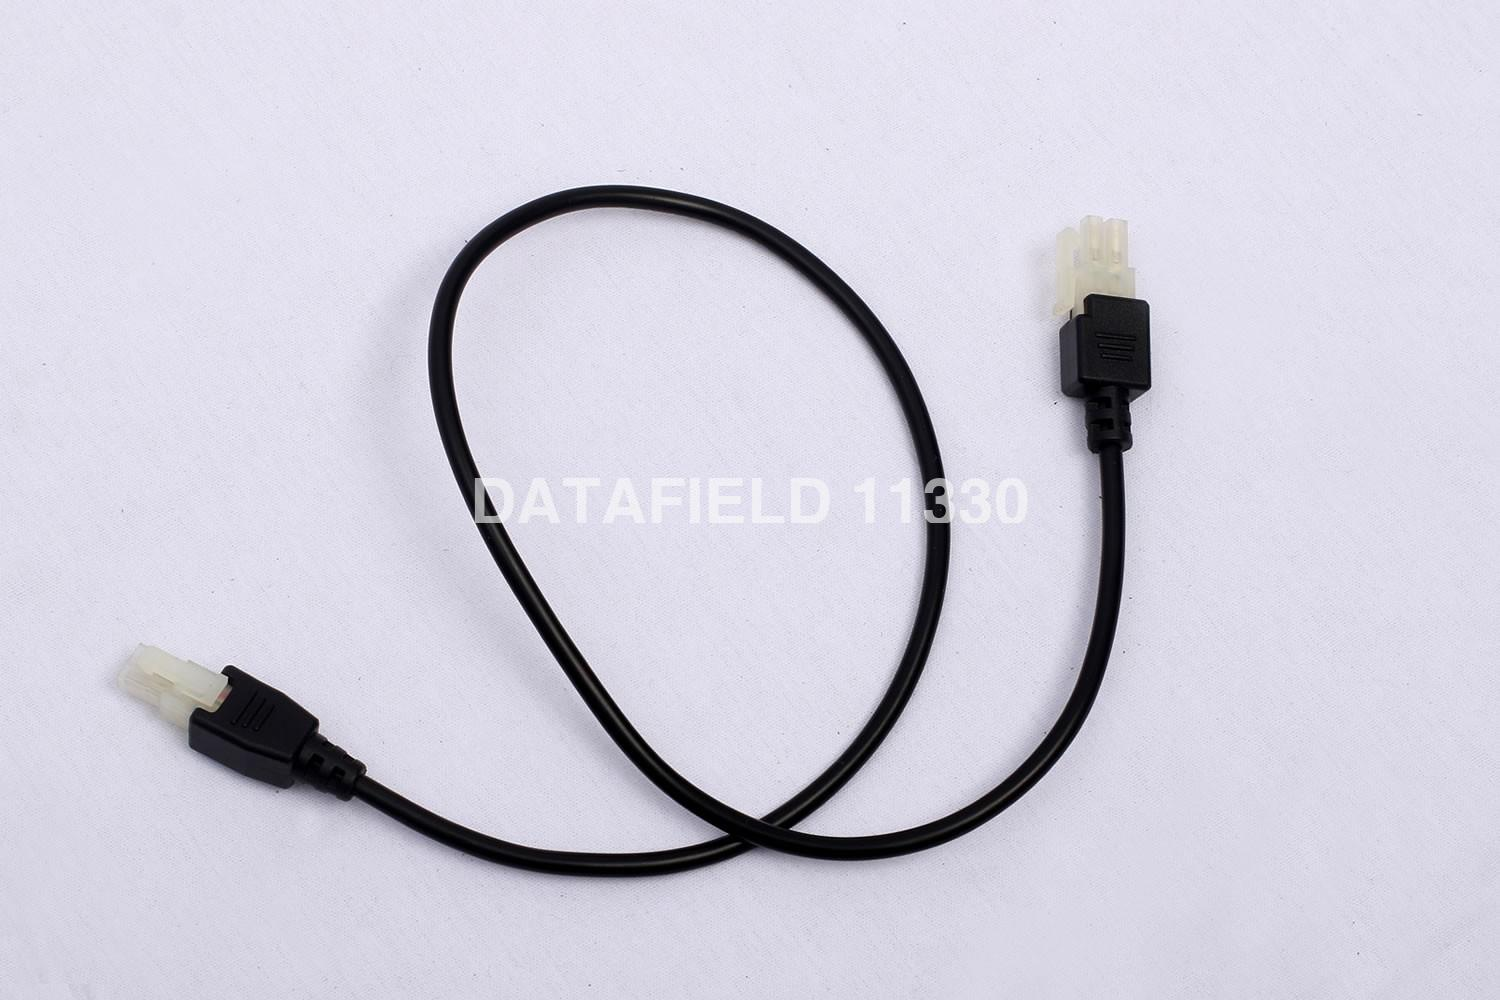 appliance wire harness 电器线束 wire harness with over mold connector